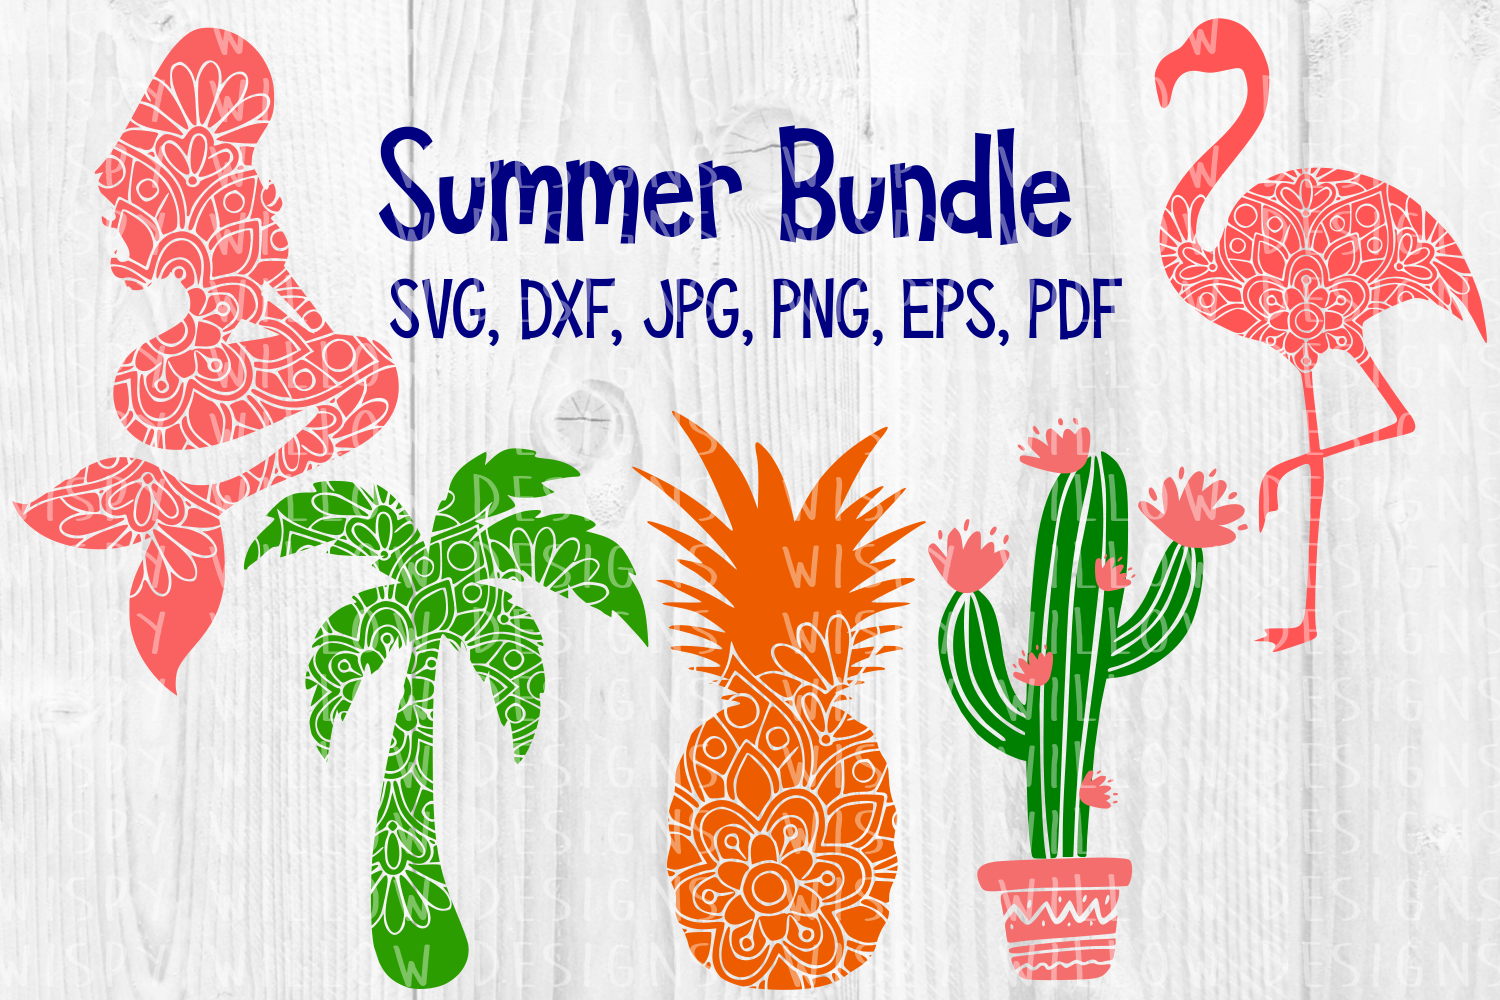 Svg Free Flamingo Svg Free Svg Cut Files Create Your Diy Projects Using Your Cricut Explore Silhouette And More The Free Cut Files Include Svg Dxf Eps And Png Files